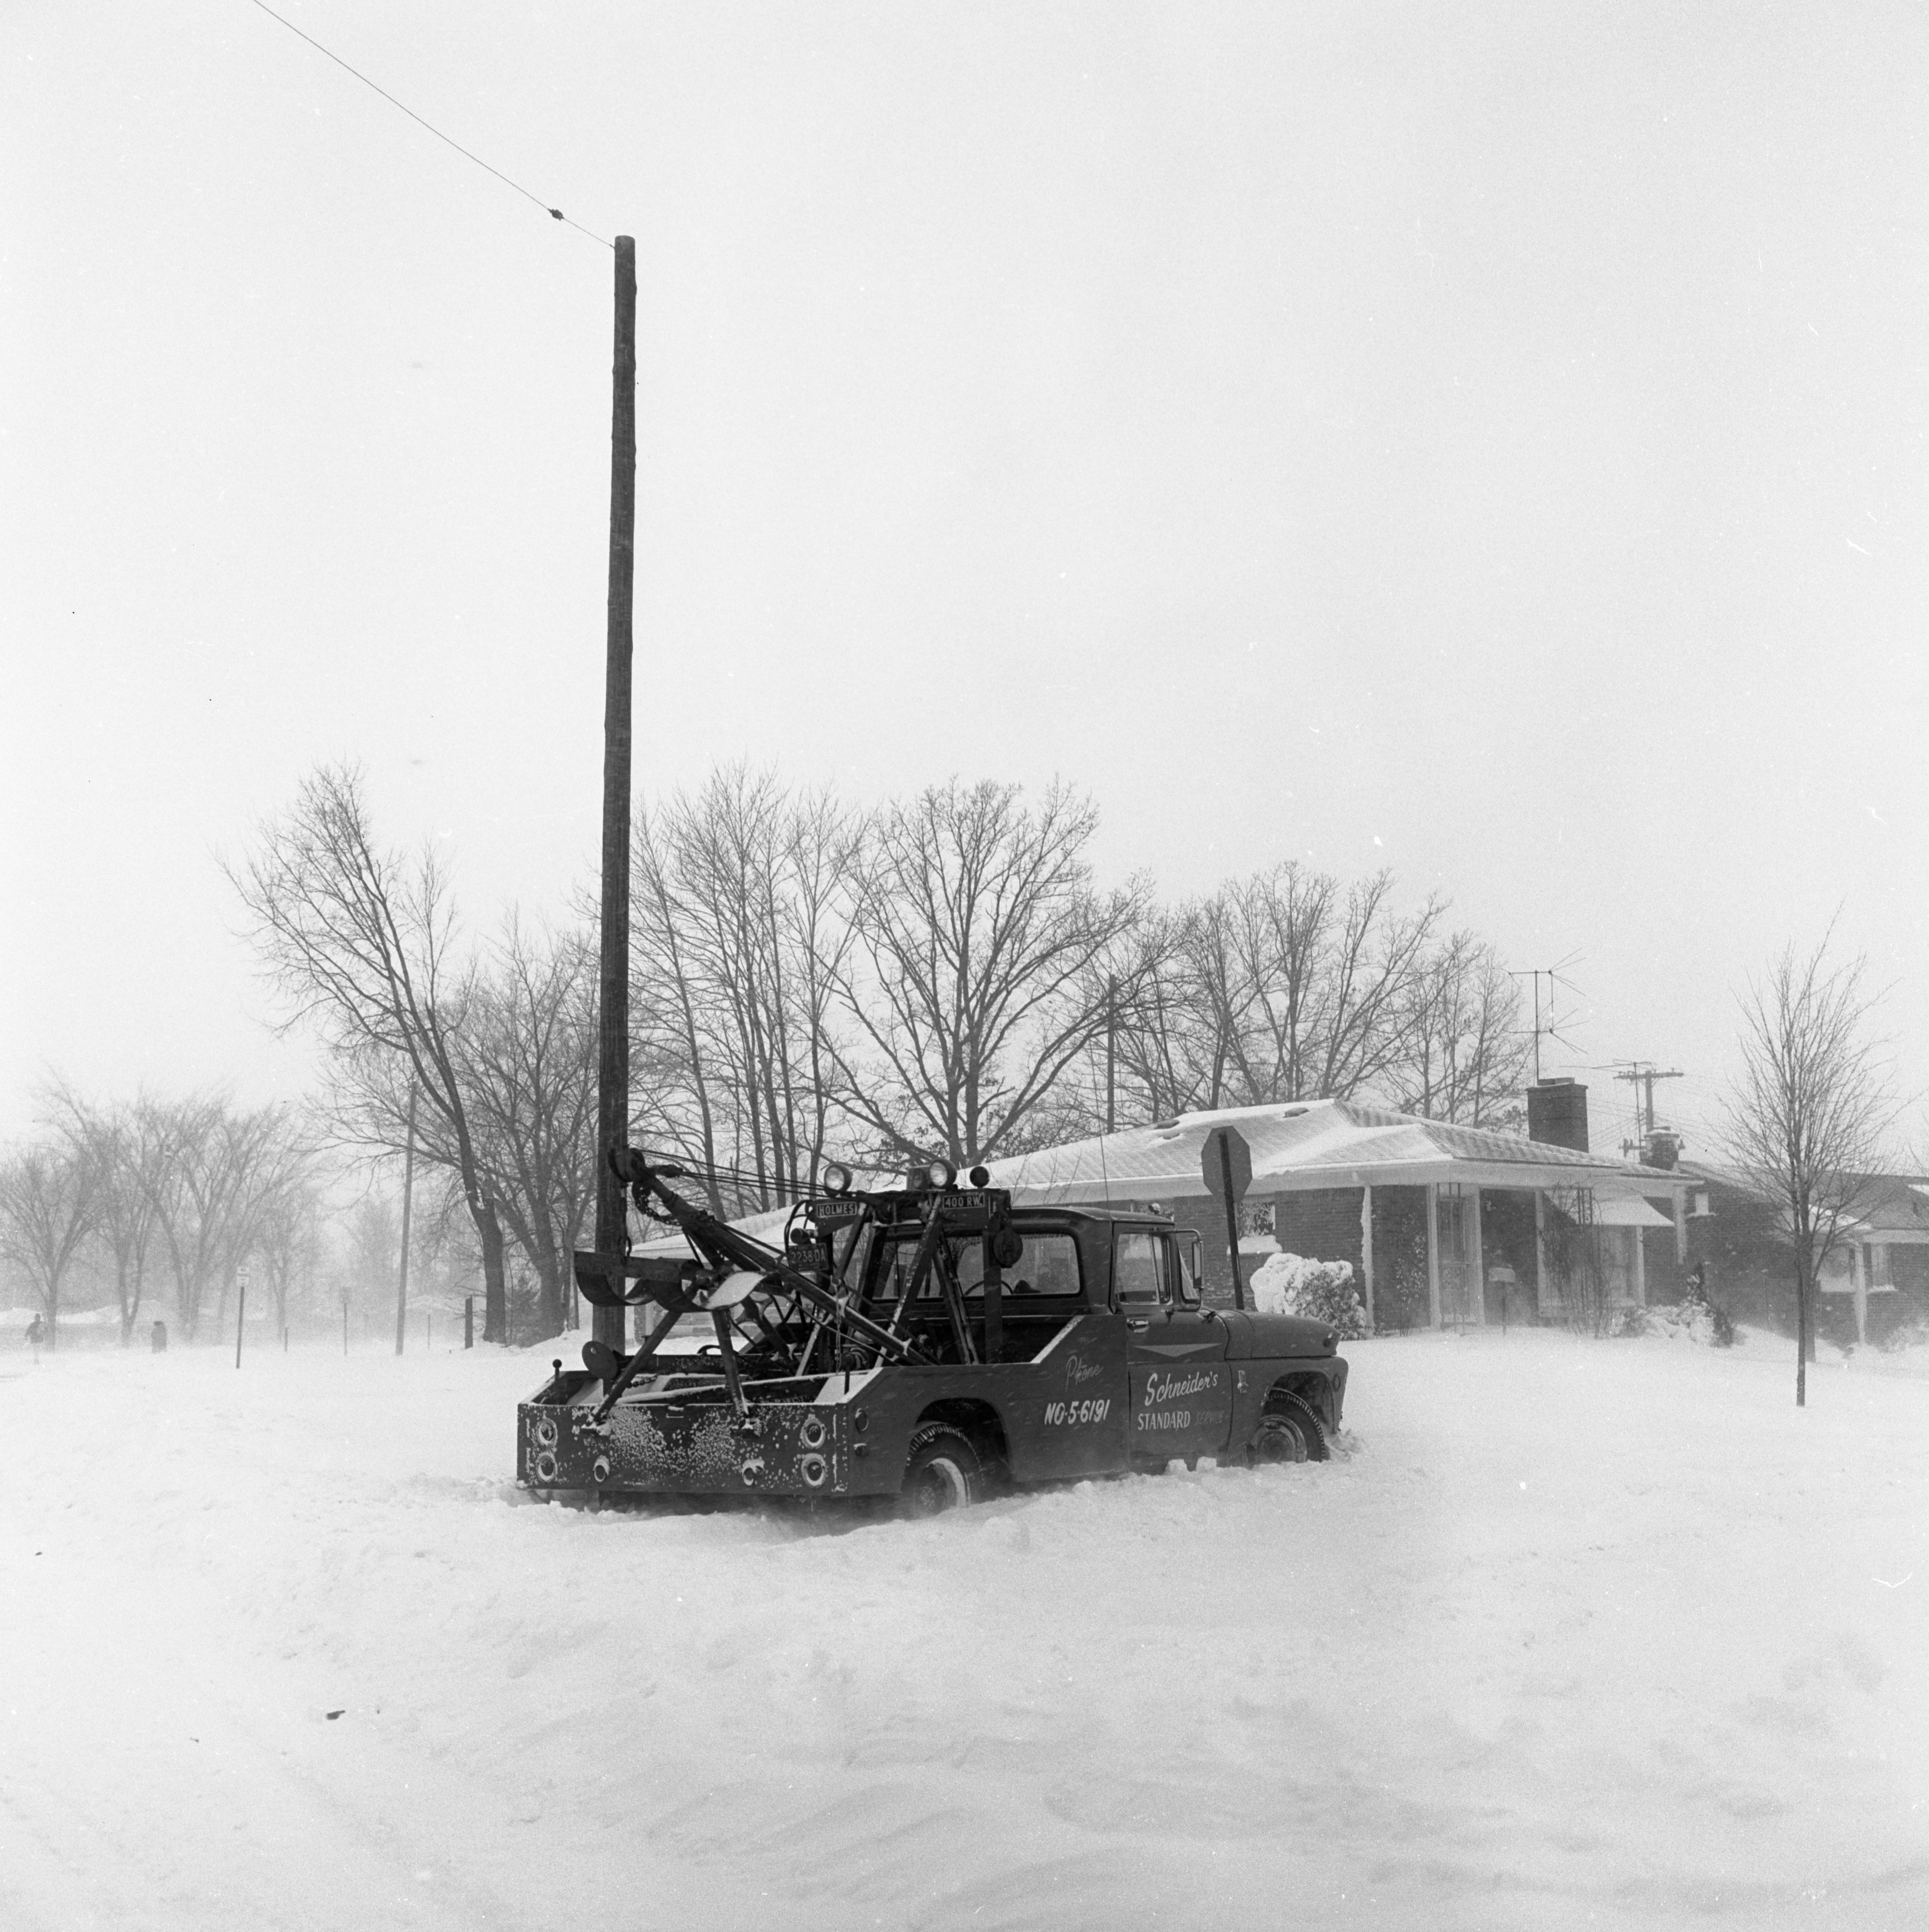 Tow Truck Stuck On Arella Blvd After Record-Breaking Snowfall, February 1965 image